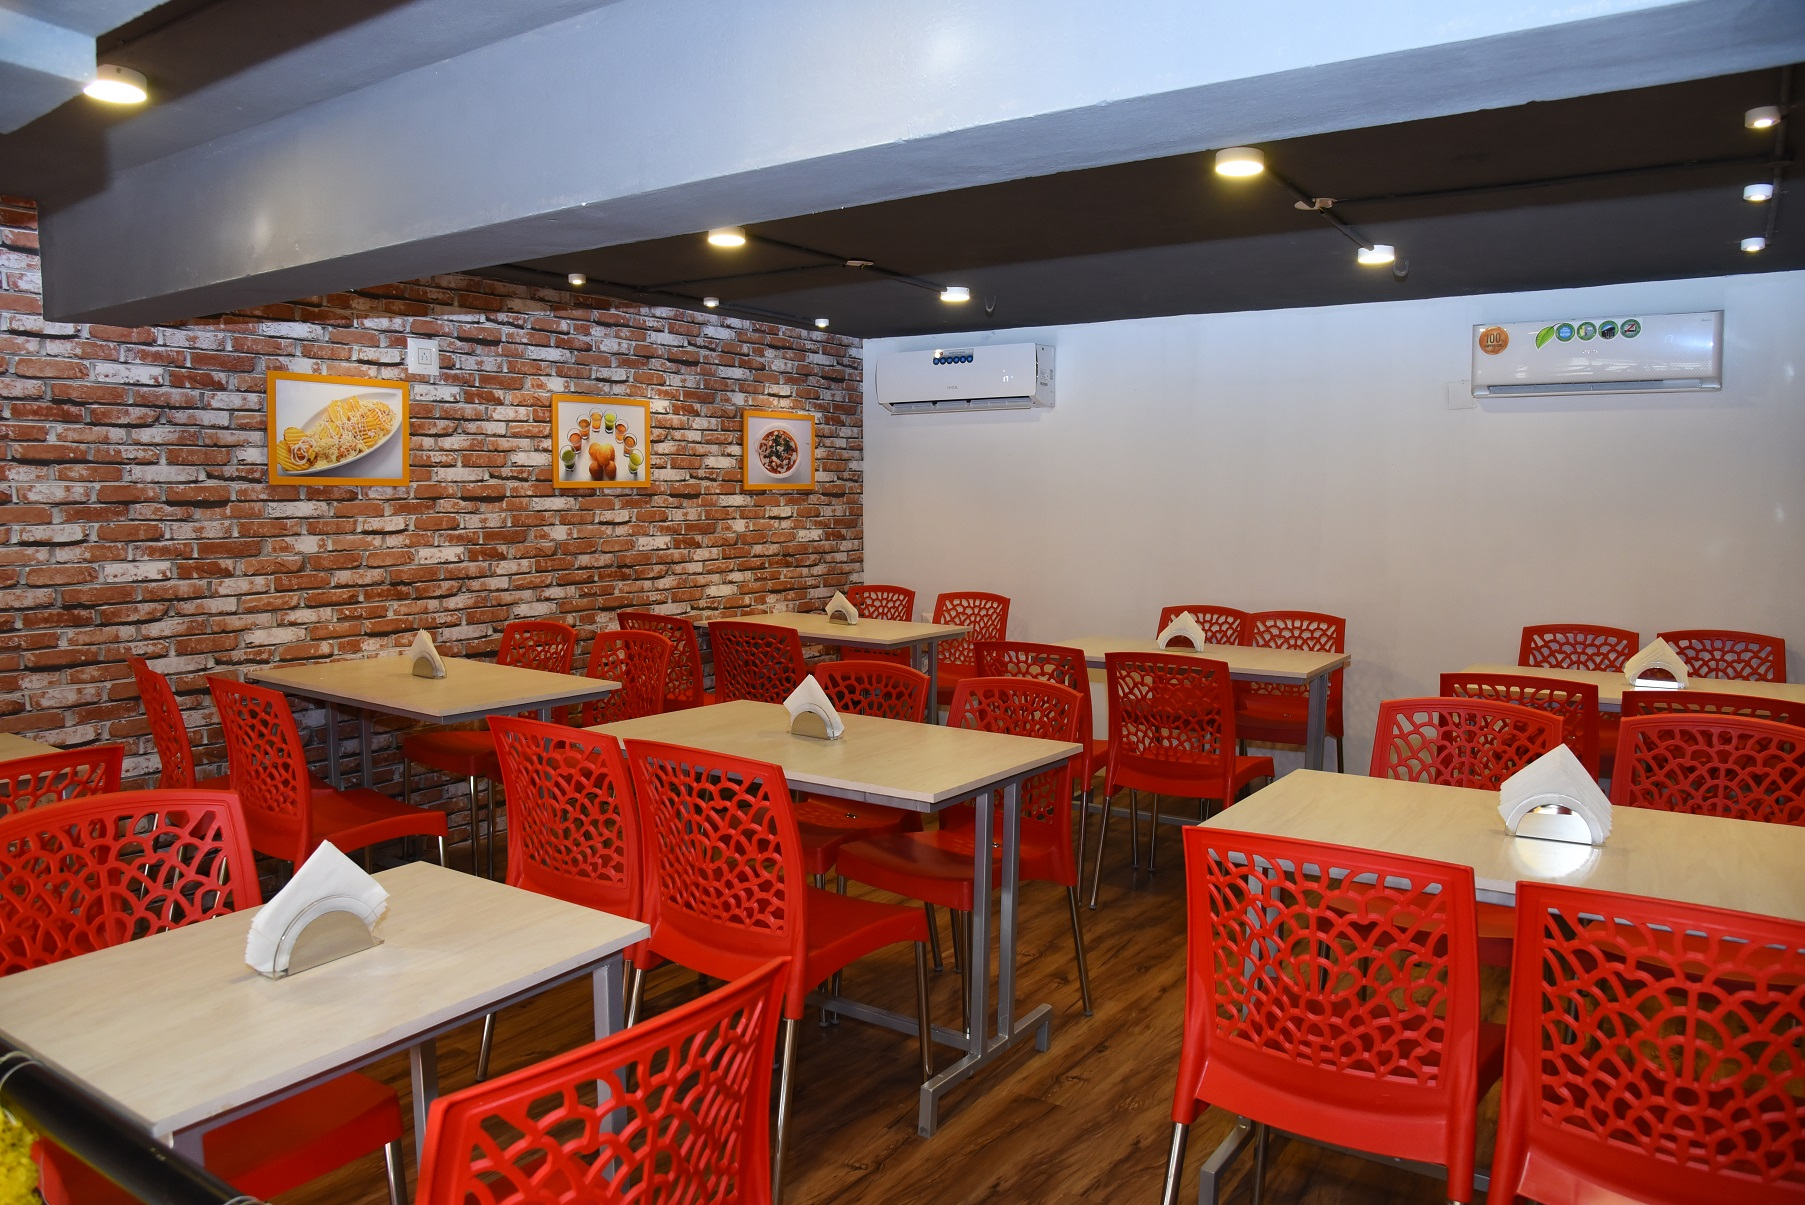 Franchise Cafe Outlet Serving Italian, Chaat and South Indian Cuisine Under 3 Brands